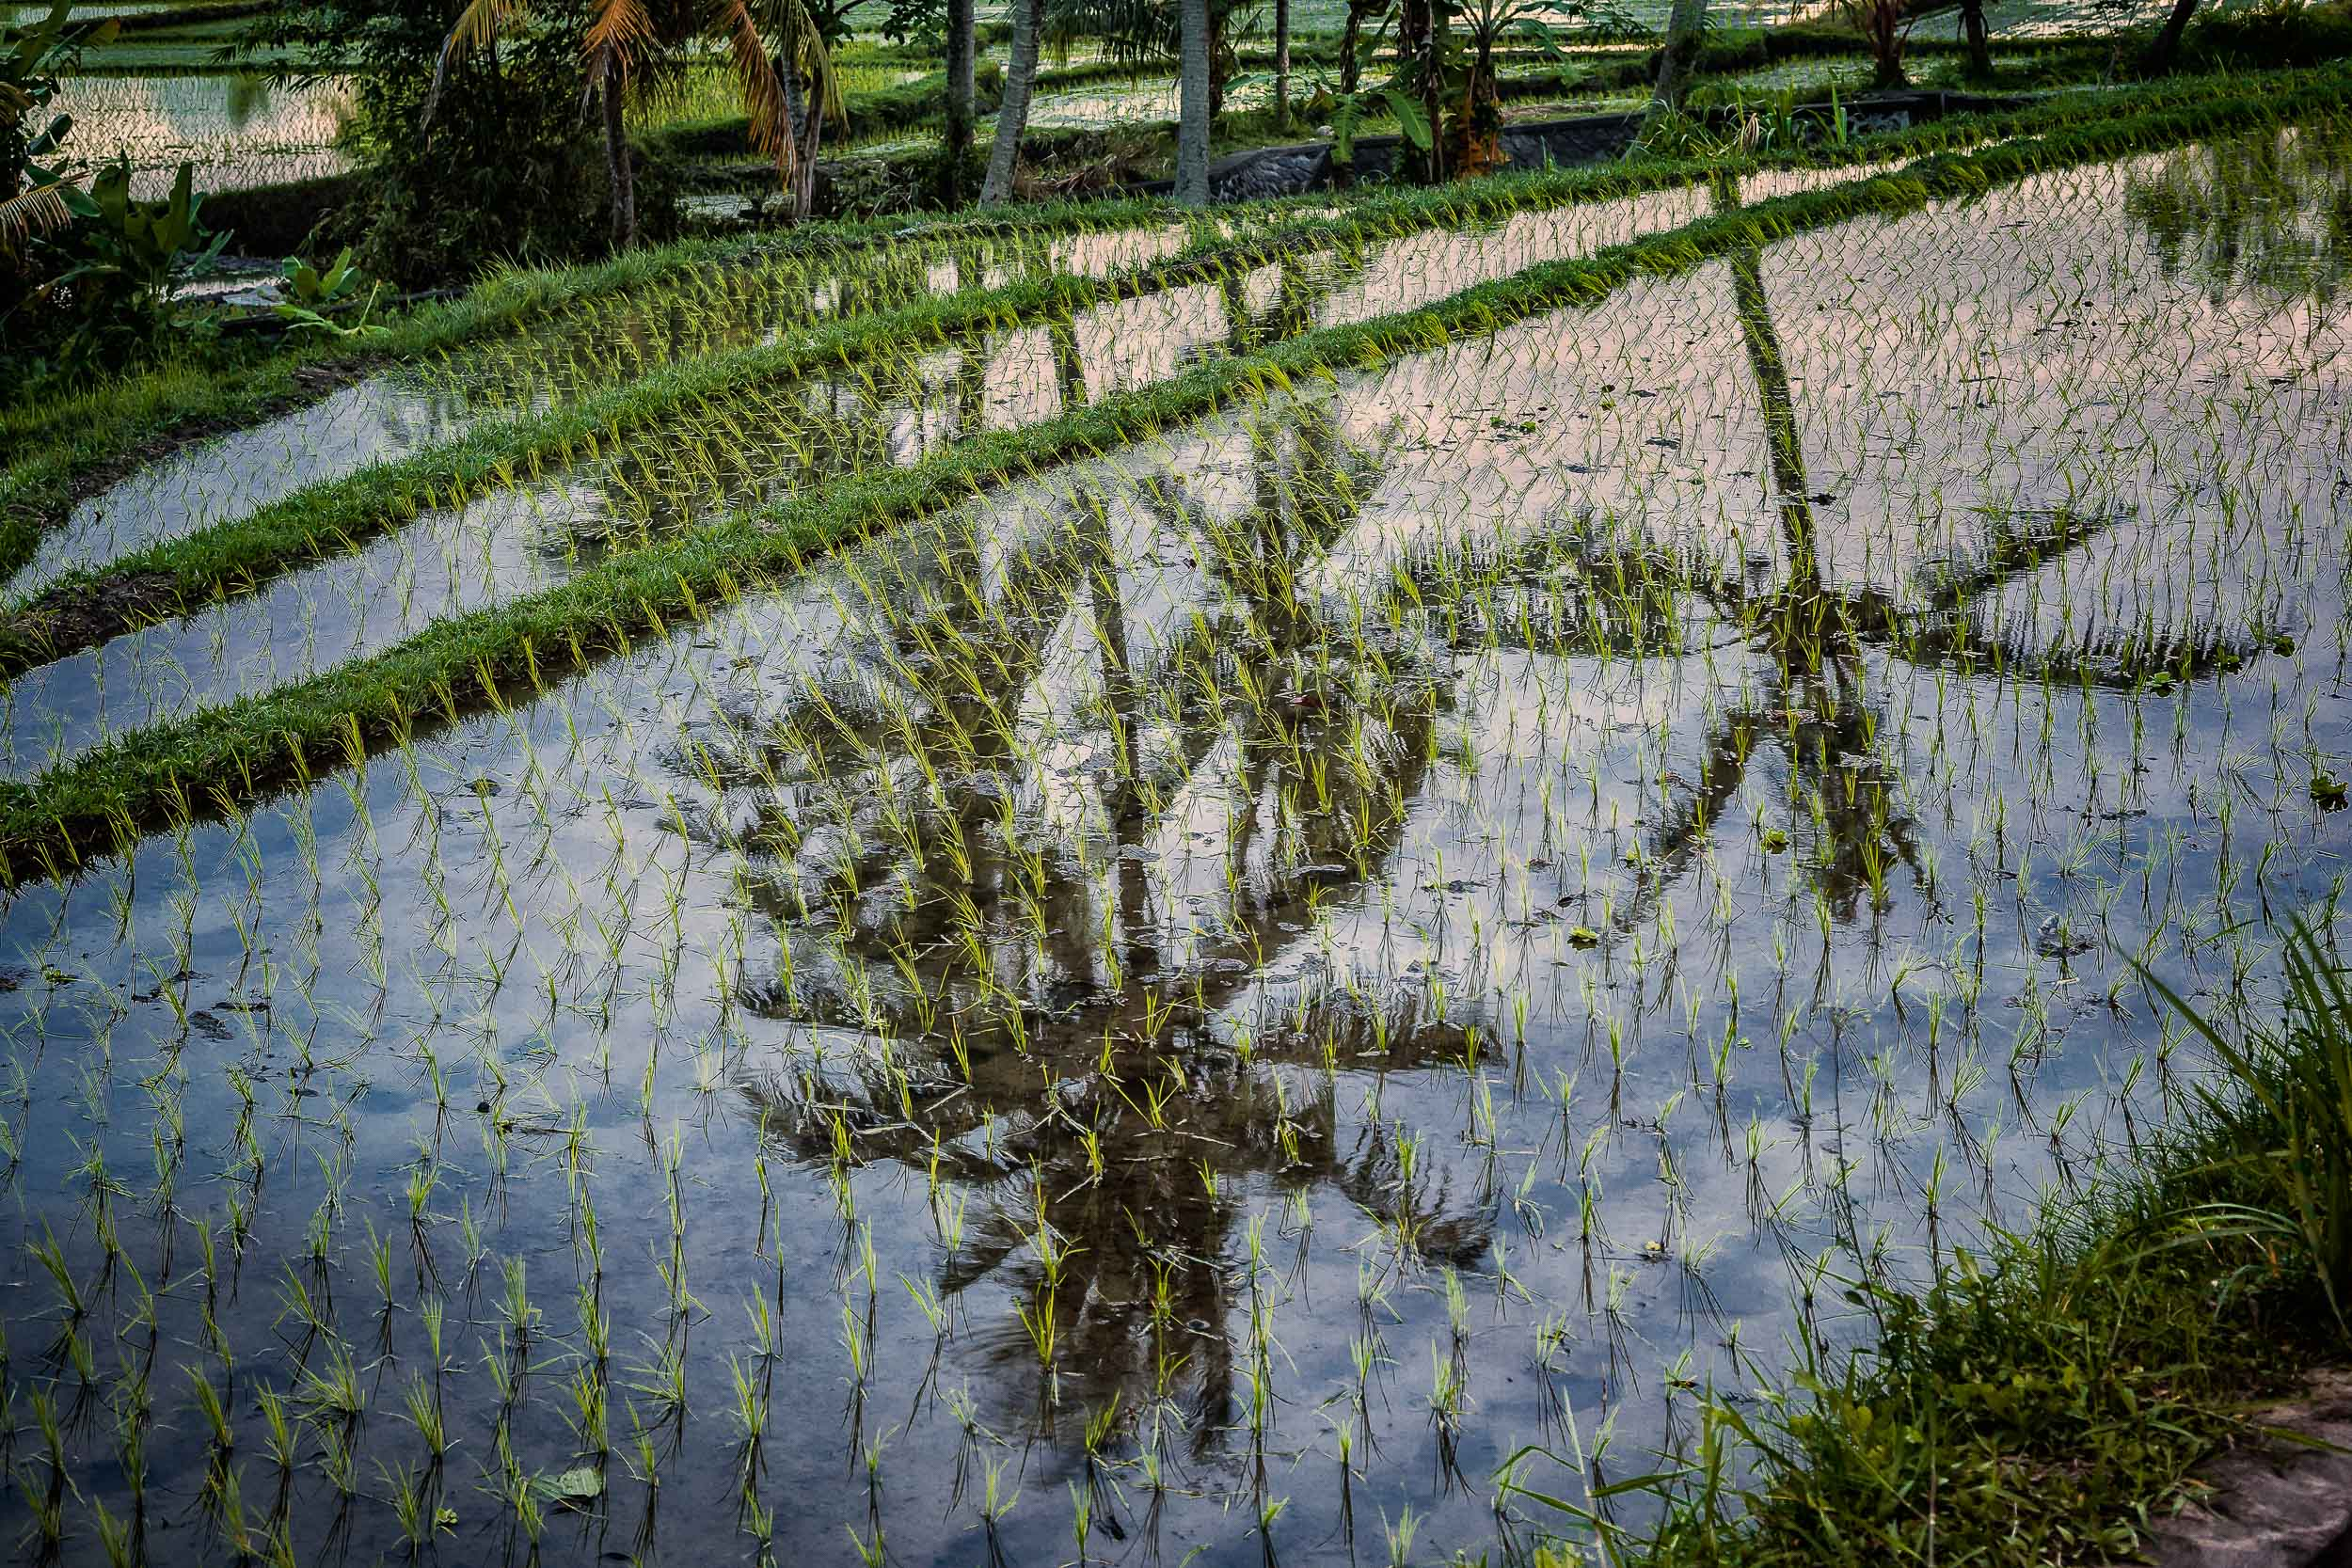 A    reflection of palm trees    in a    rice paddy    in    rural Bali, Indonesia   .